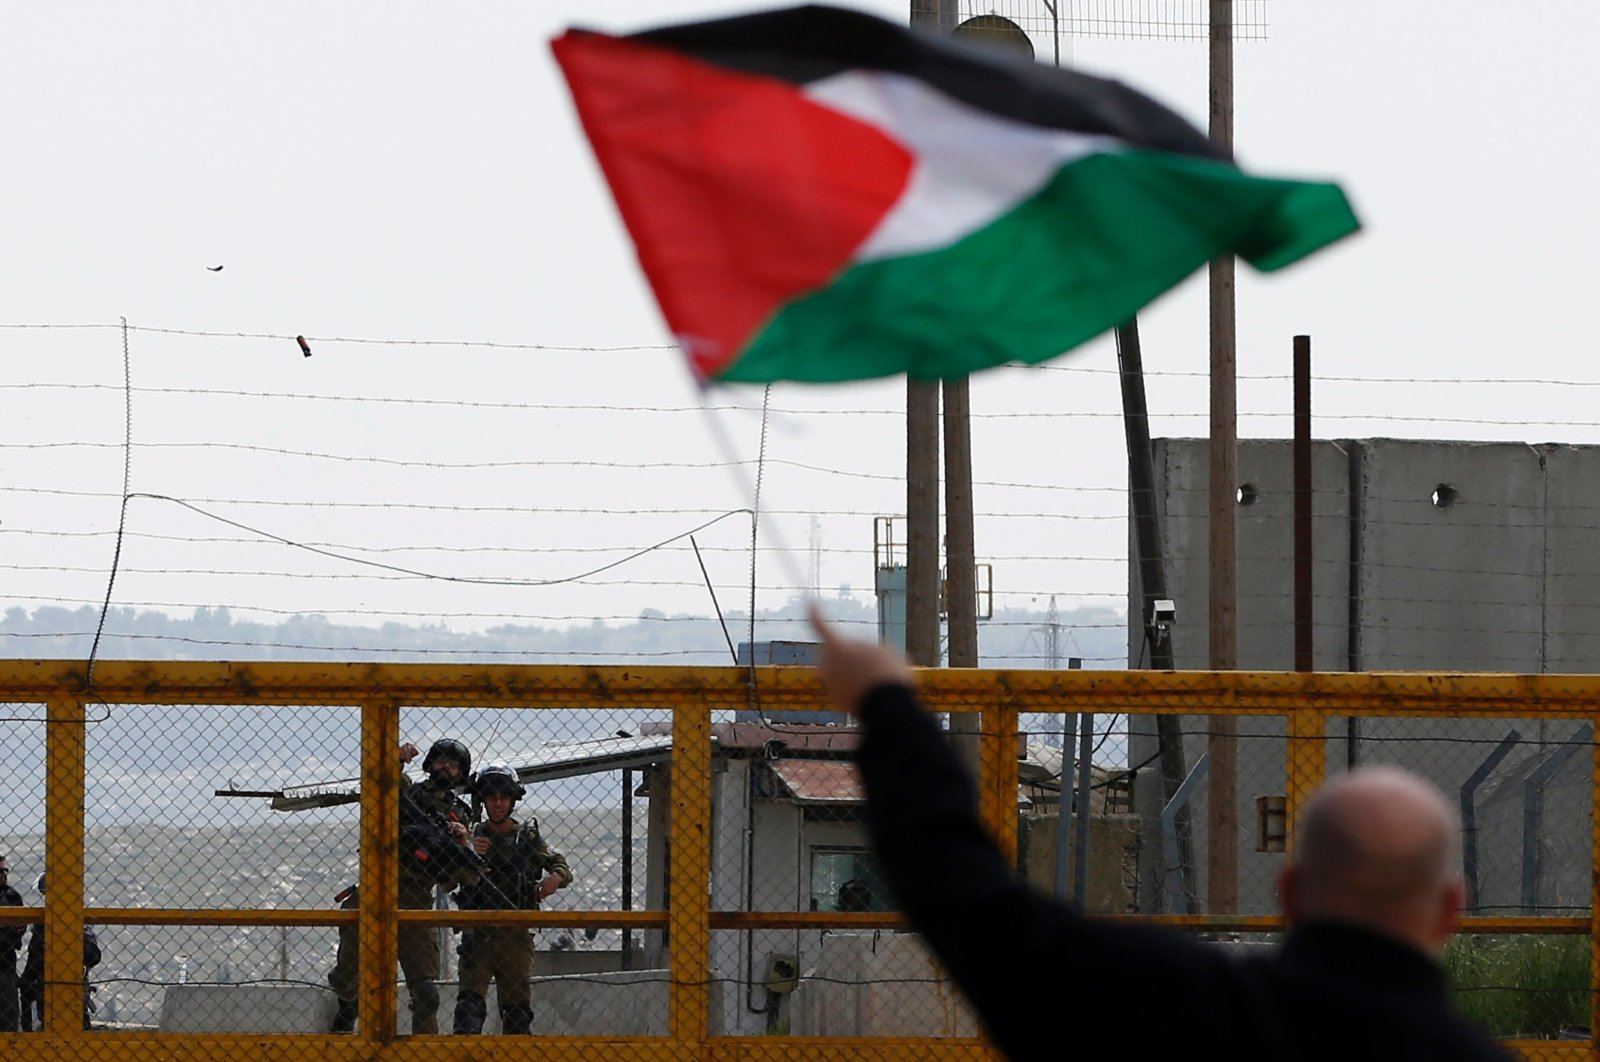 A Palestinian protester waves his national flag in front of Israeli security forces outside the compound of the Israeli-run Ofer prison near Betunia in the Israeli occupied West Bank, March 30, 2016. (AFP Photo)